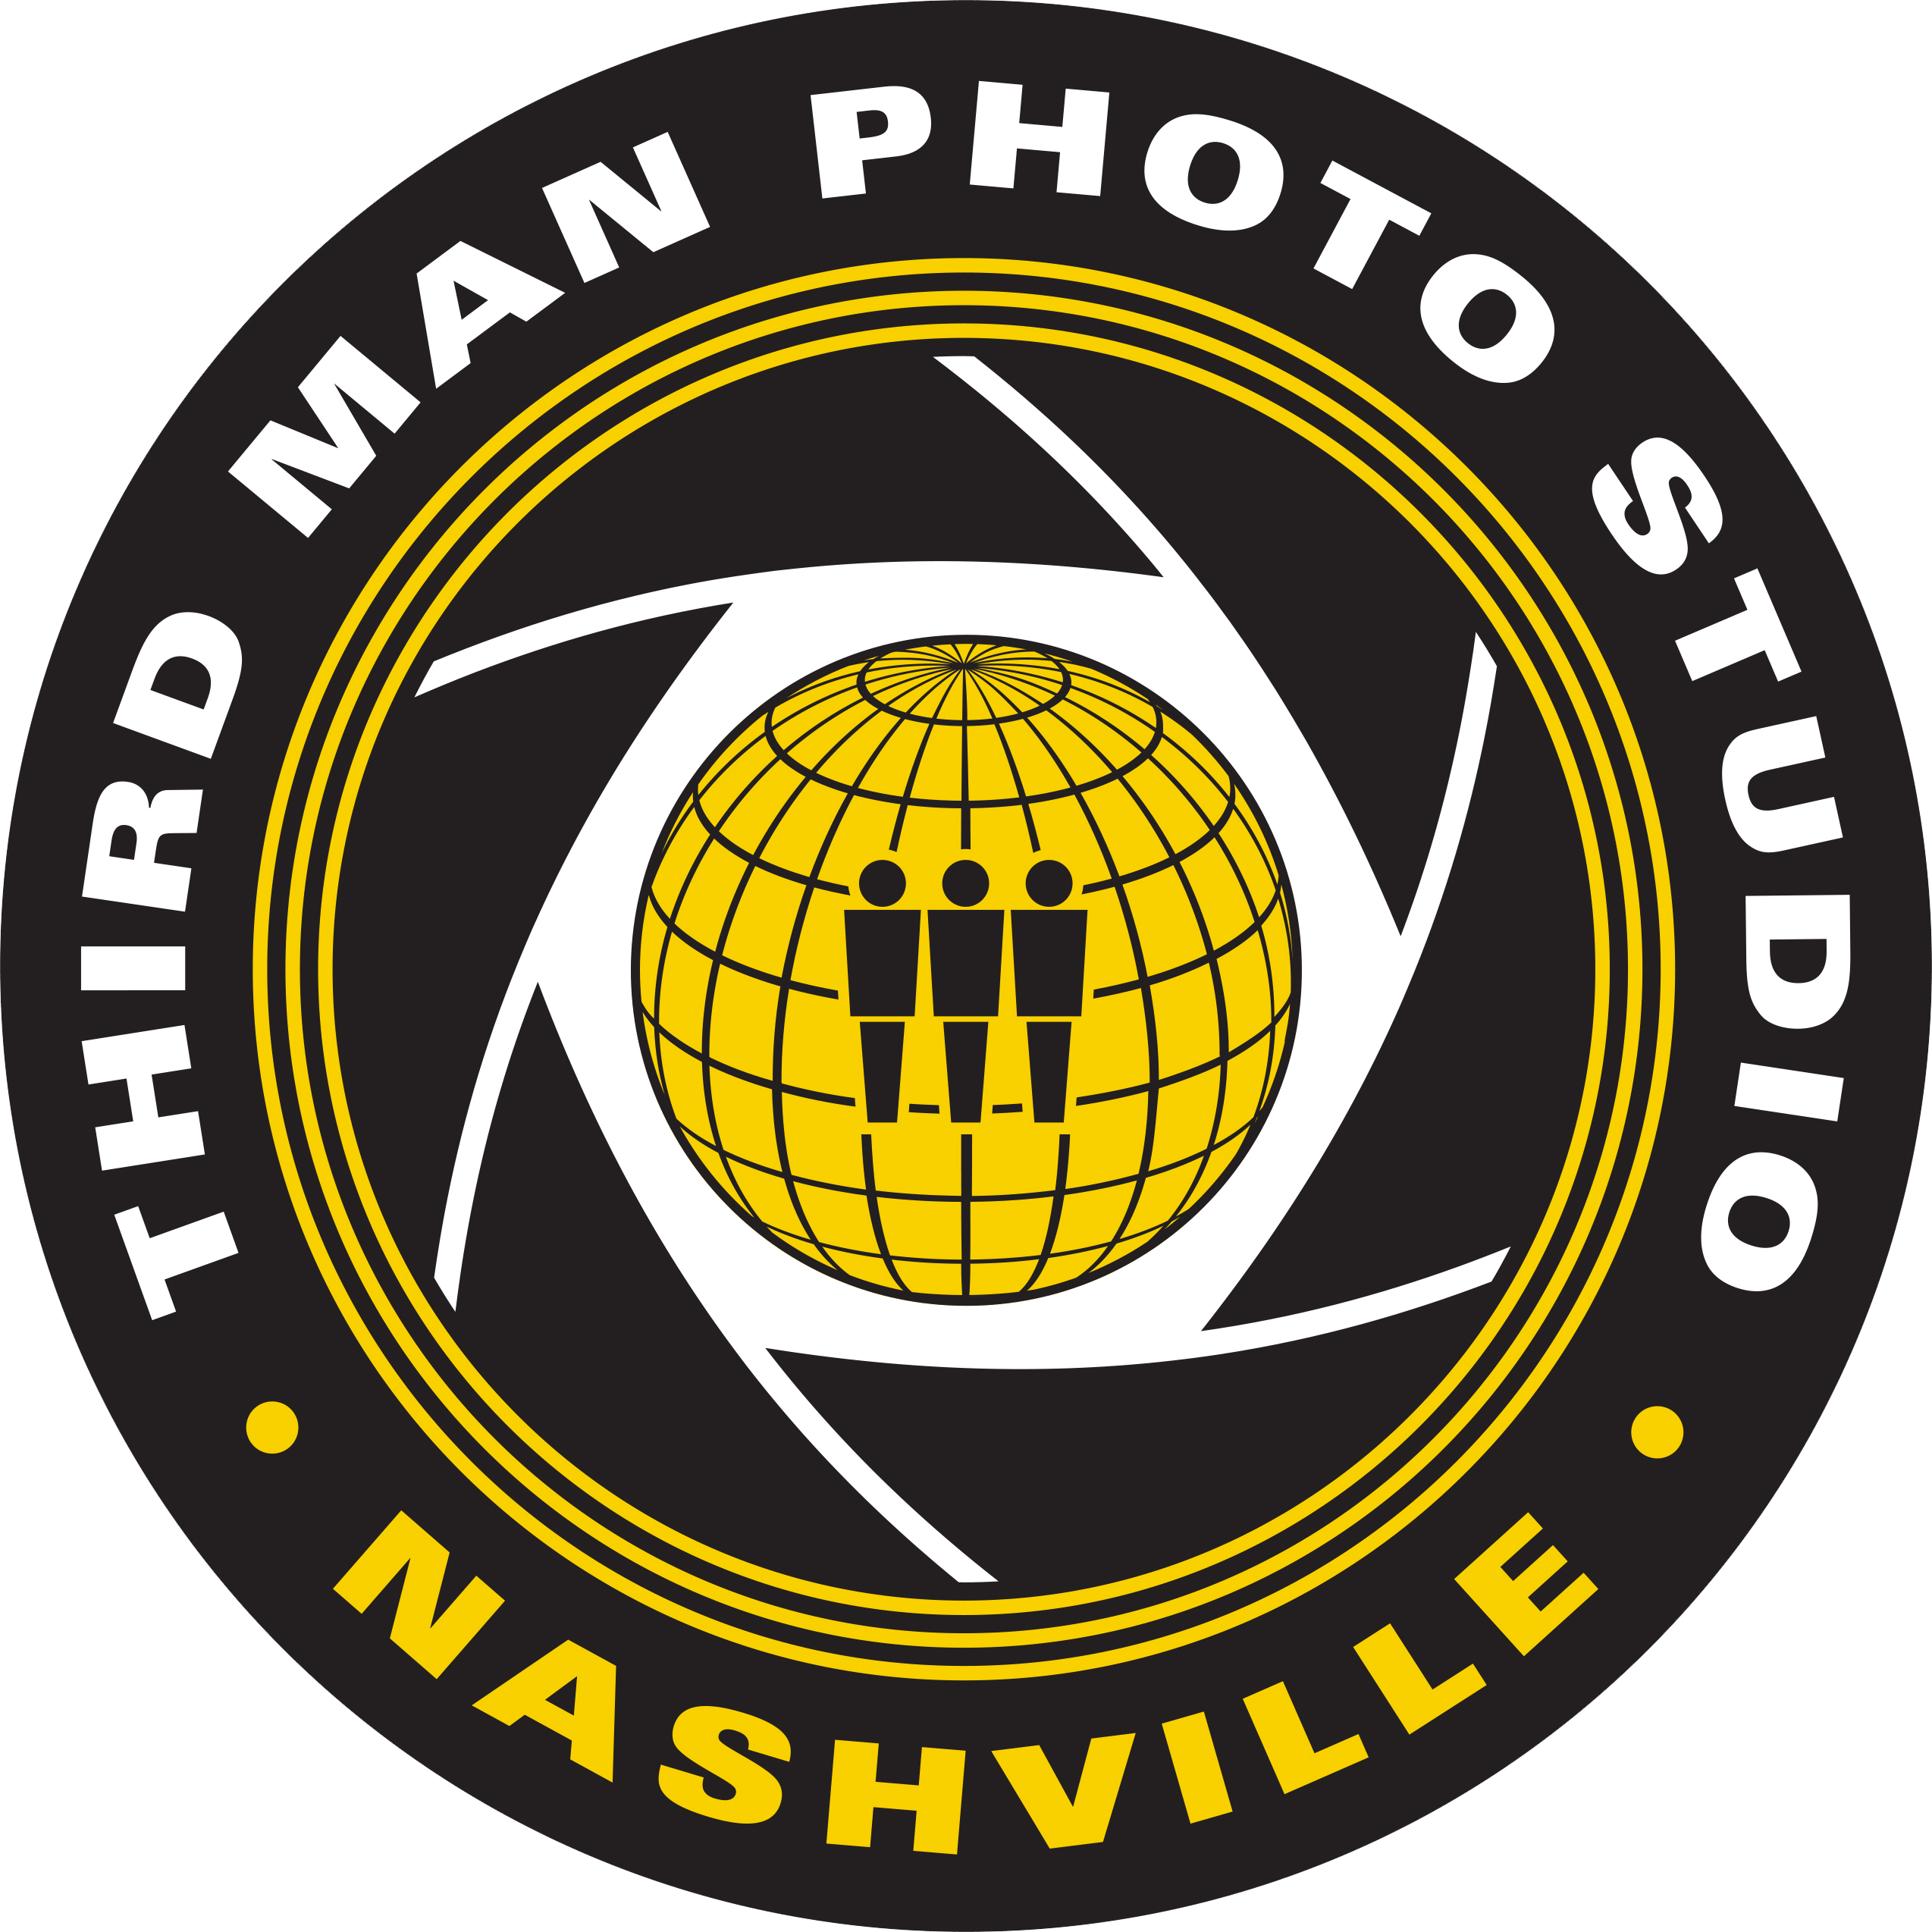 Third Man Photo Studio Logo